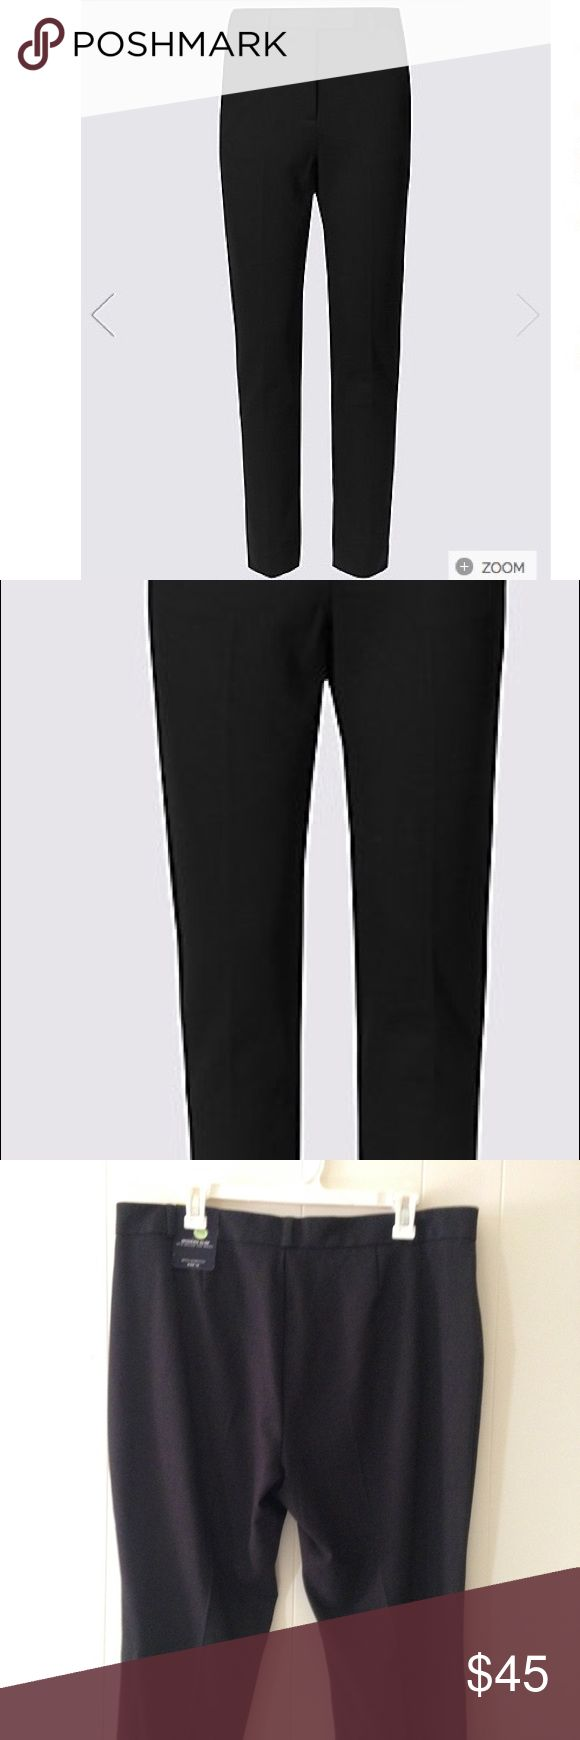 🎄🎁NWT Slim leg trousers with stretch size 12 New M & S collection slim leg trousers that is classically stylish. Size 12 US/16 UK short mid rise, sits below the waist, fastens with hook bar and zip with added stretch. Charcoal colored. Marks & Spencer Pants Trousers